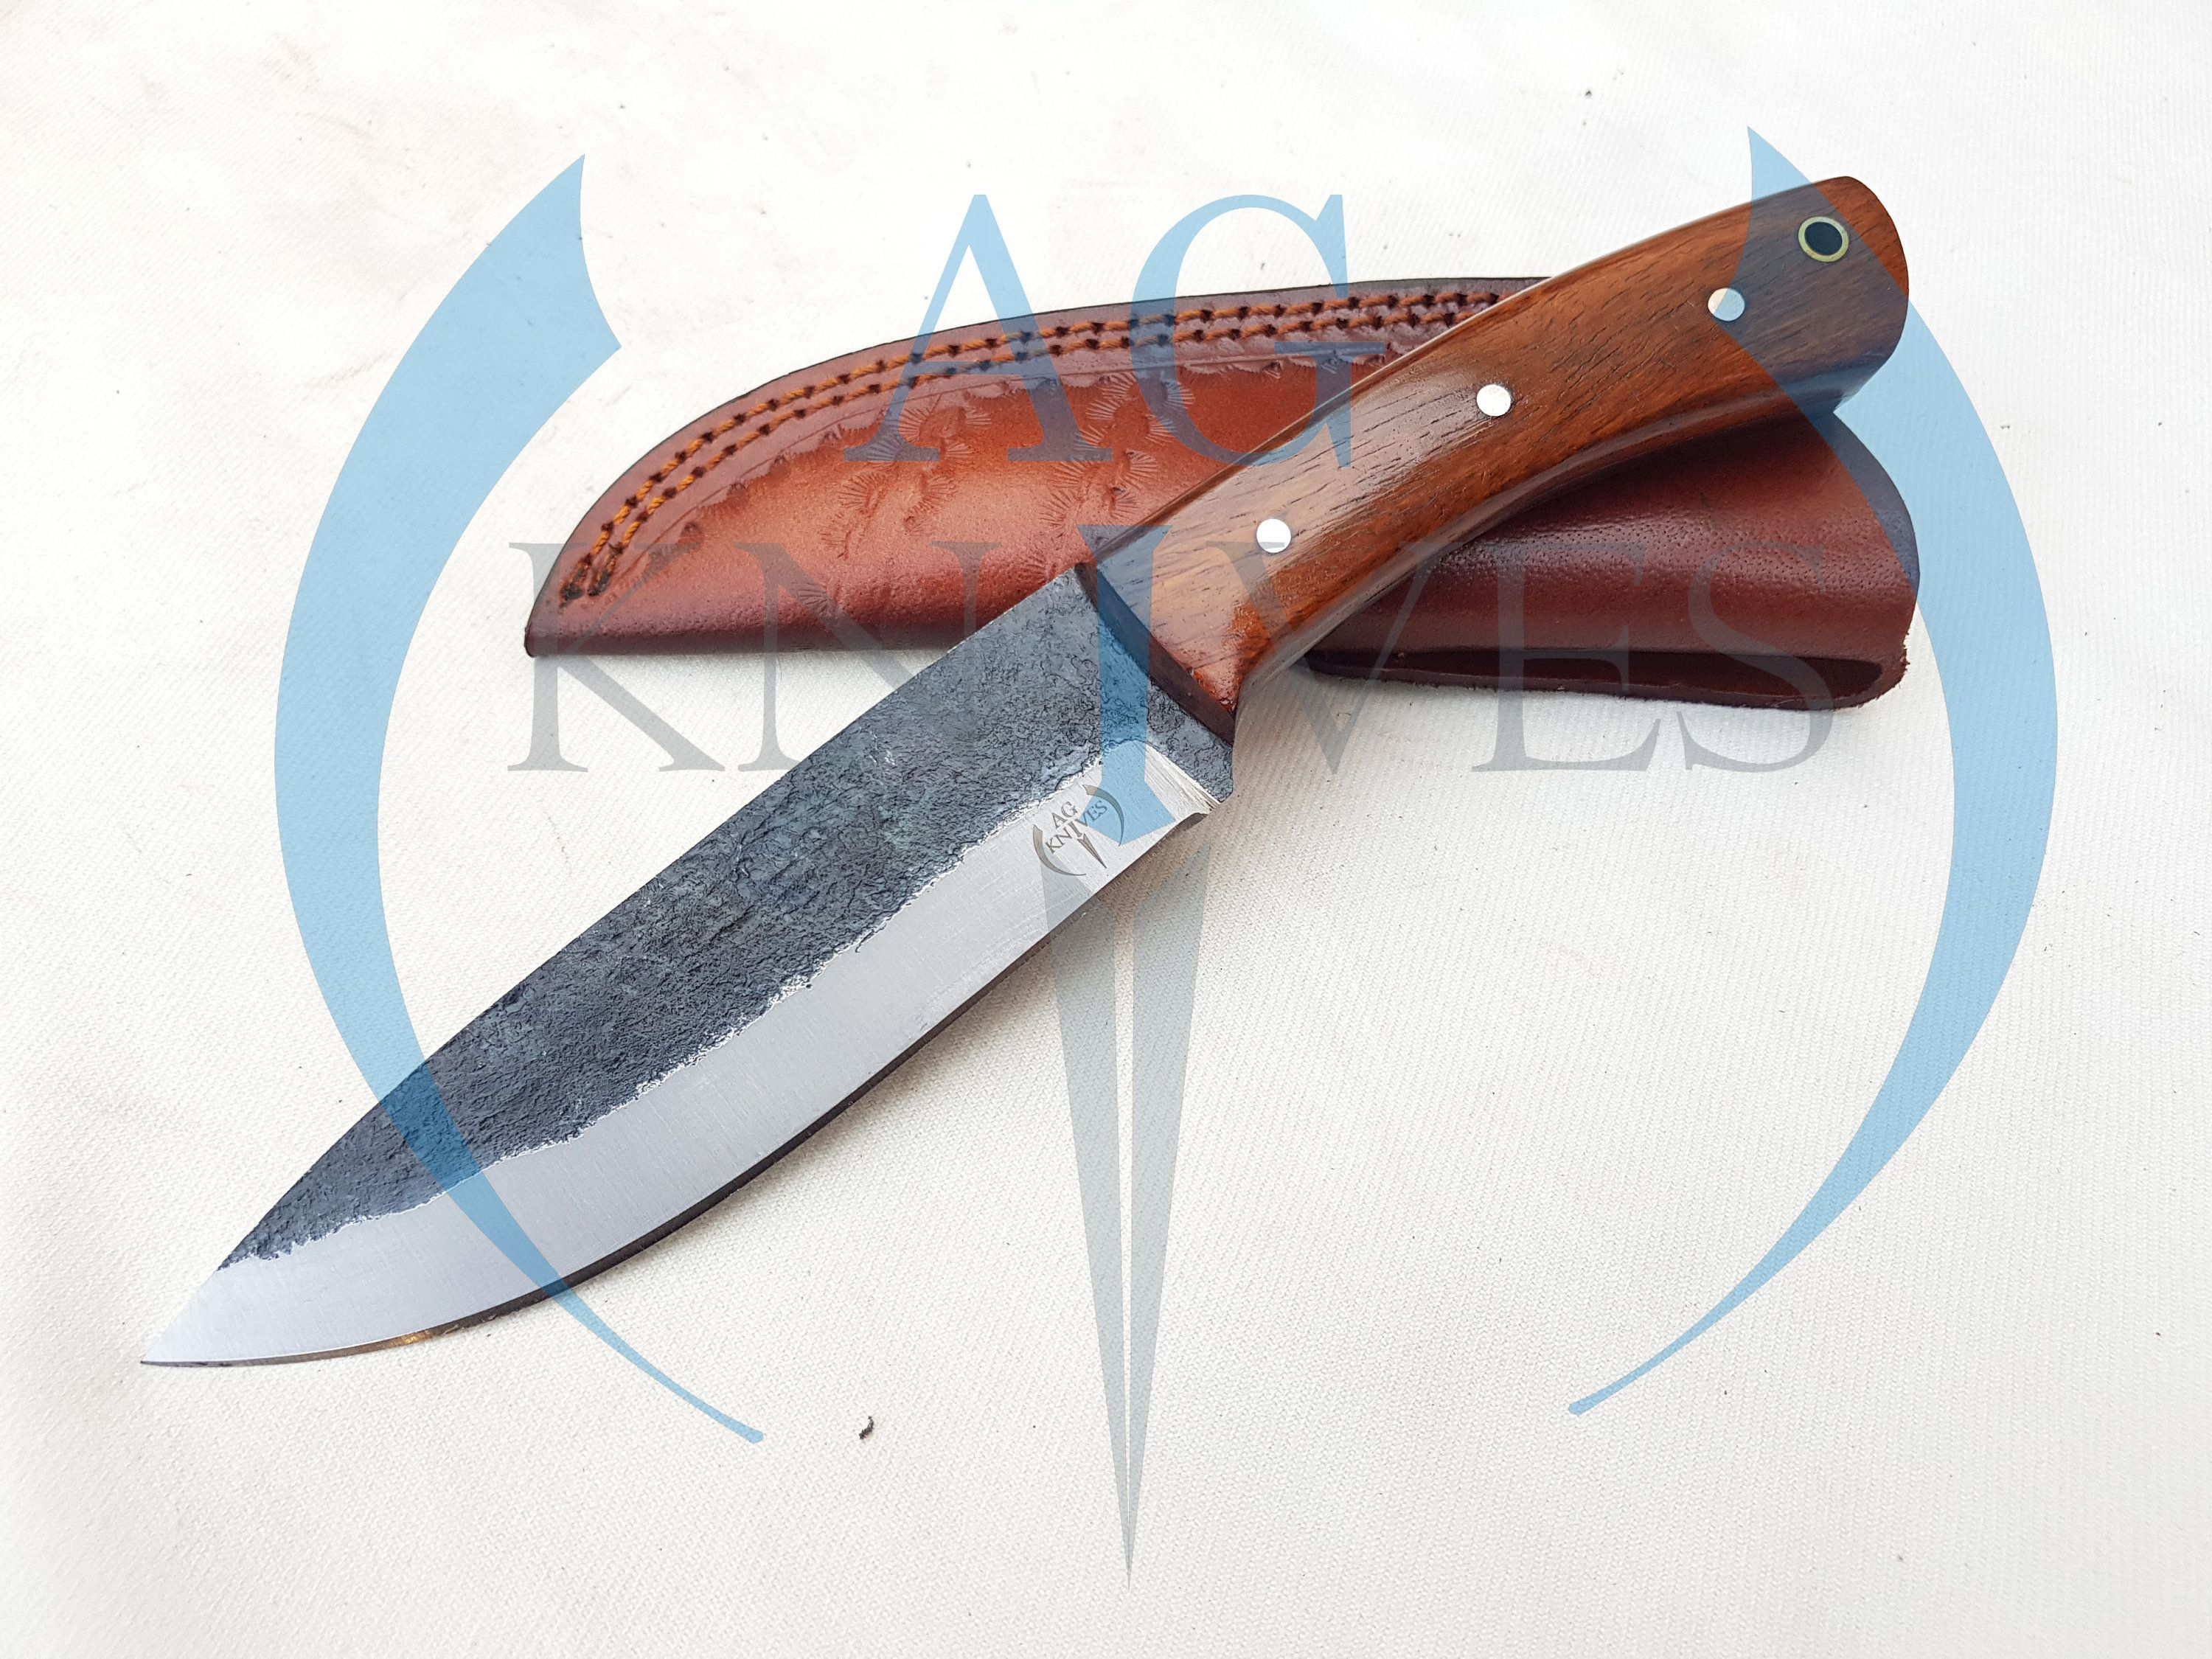 Handmade High Carbon Steel Hunting Knife With Wood Handle Etsy In 2020 Hunting Knife High Carbon Steel Knife